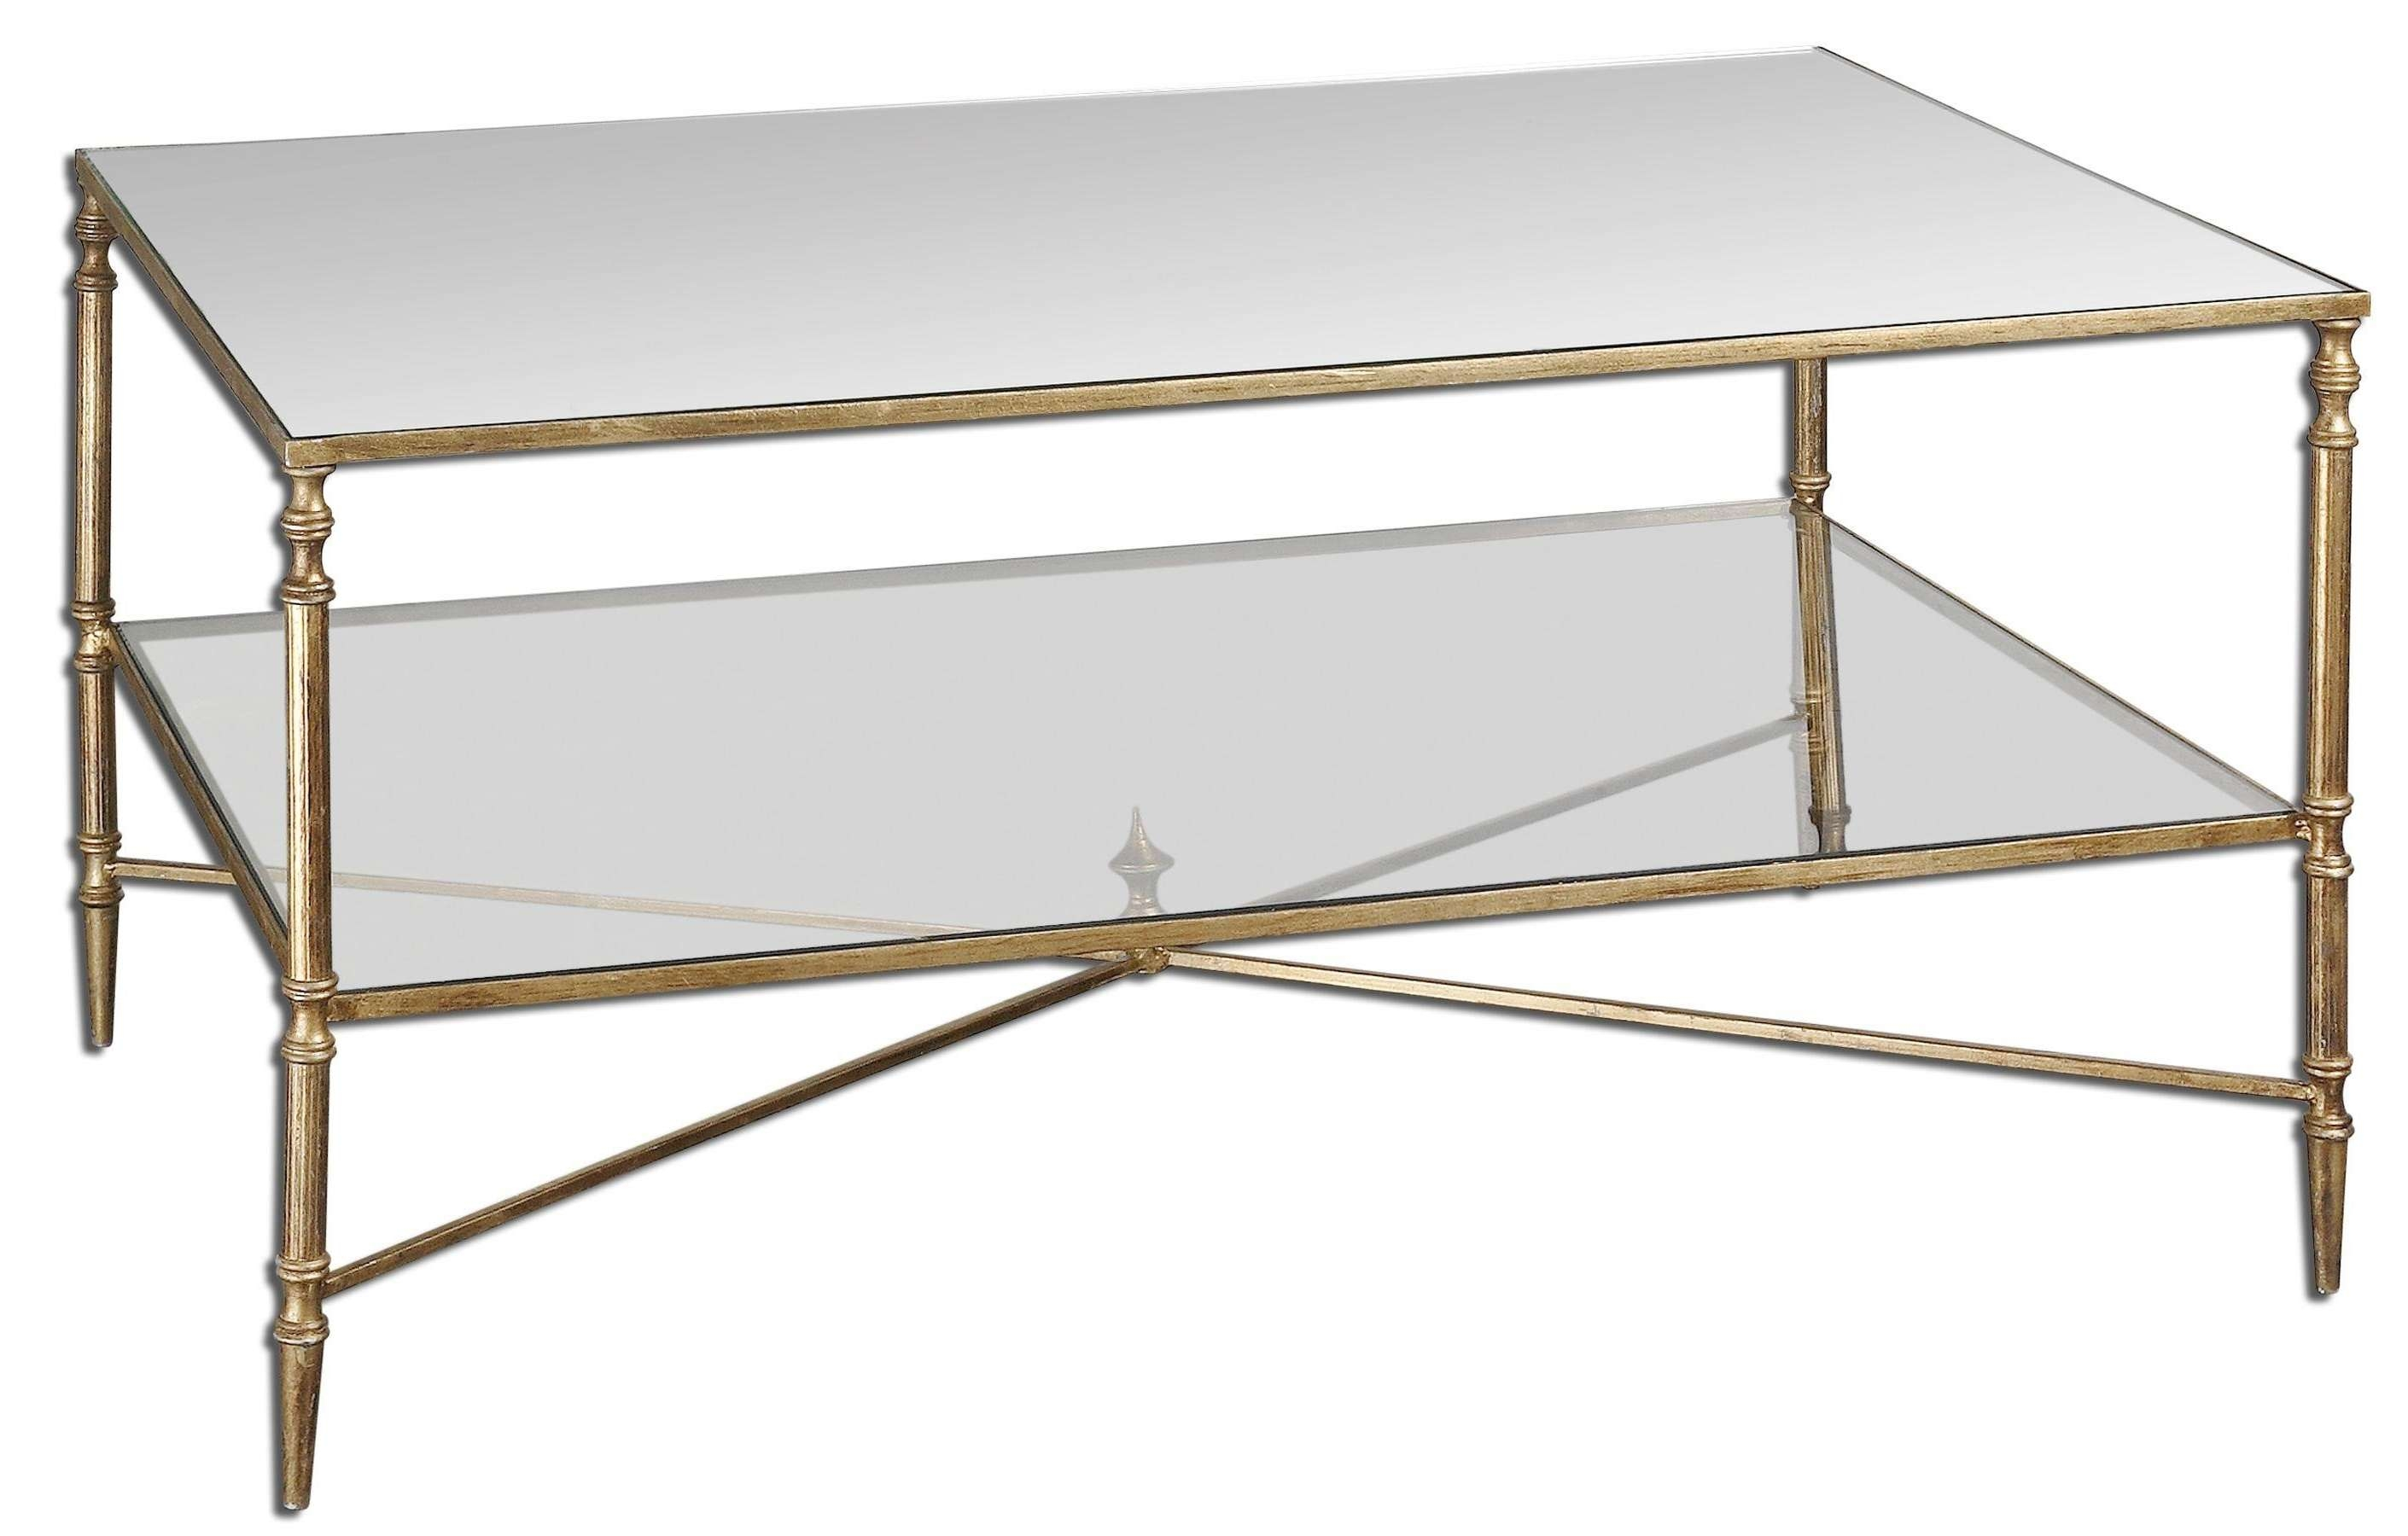 Favorite Antique Glass Coffee Tables Within Clear Rectangle Antique Metal Glass Coffee Table With Shelf (View 8 of 20)